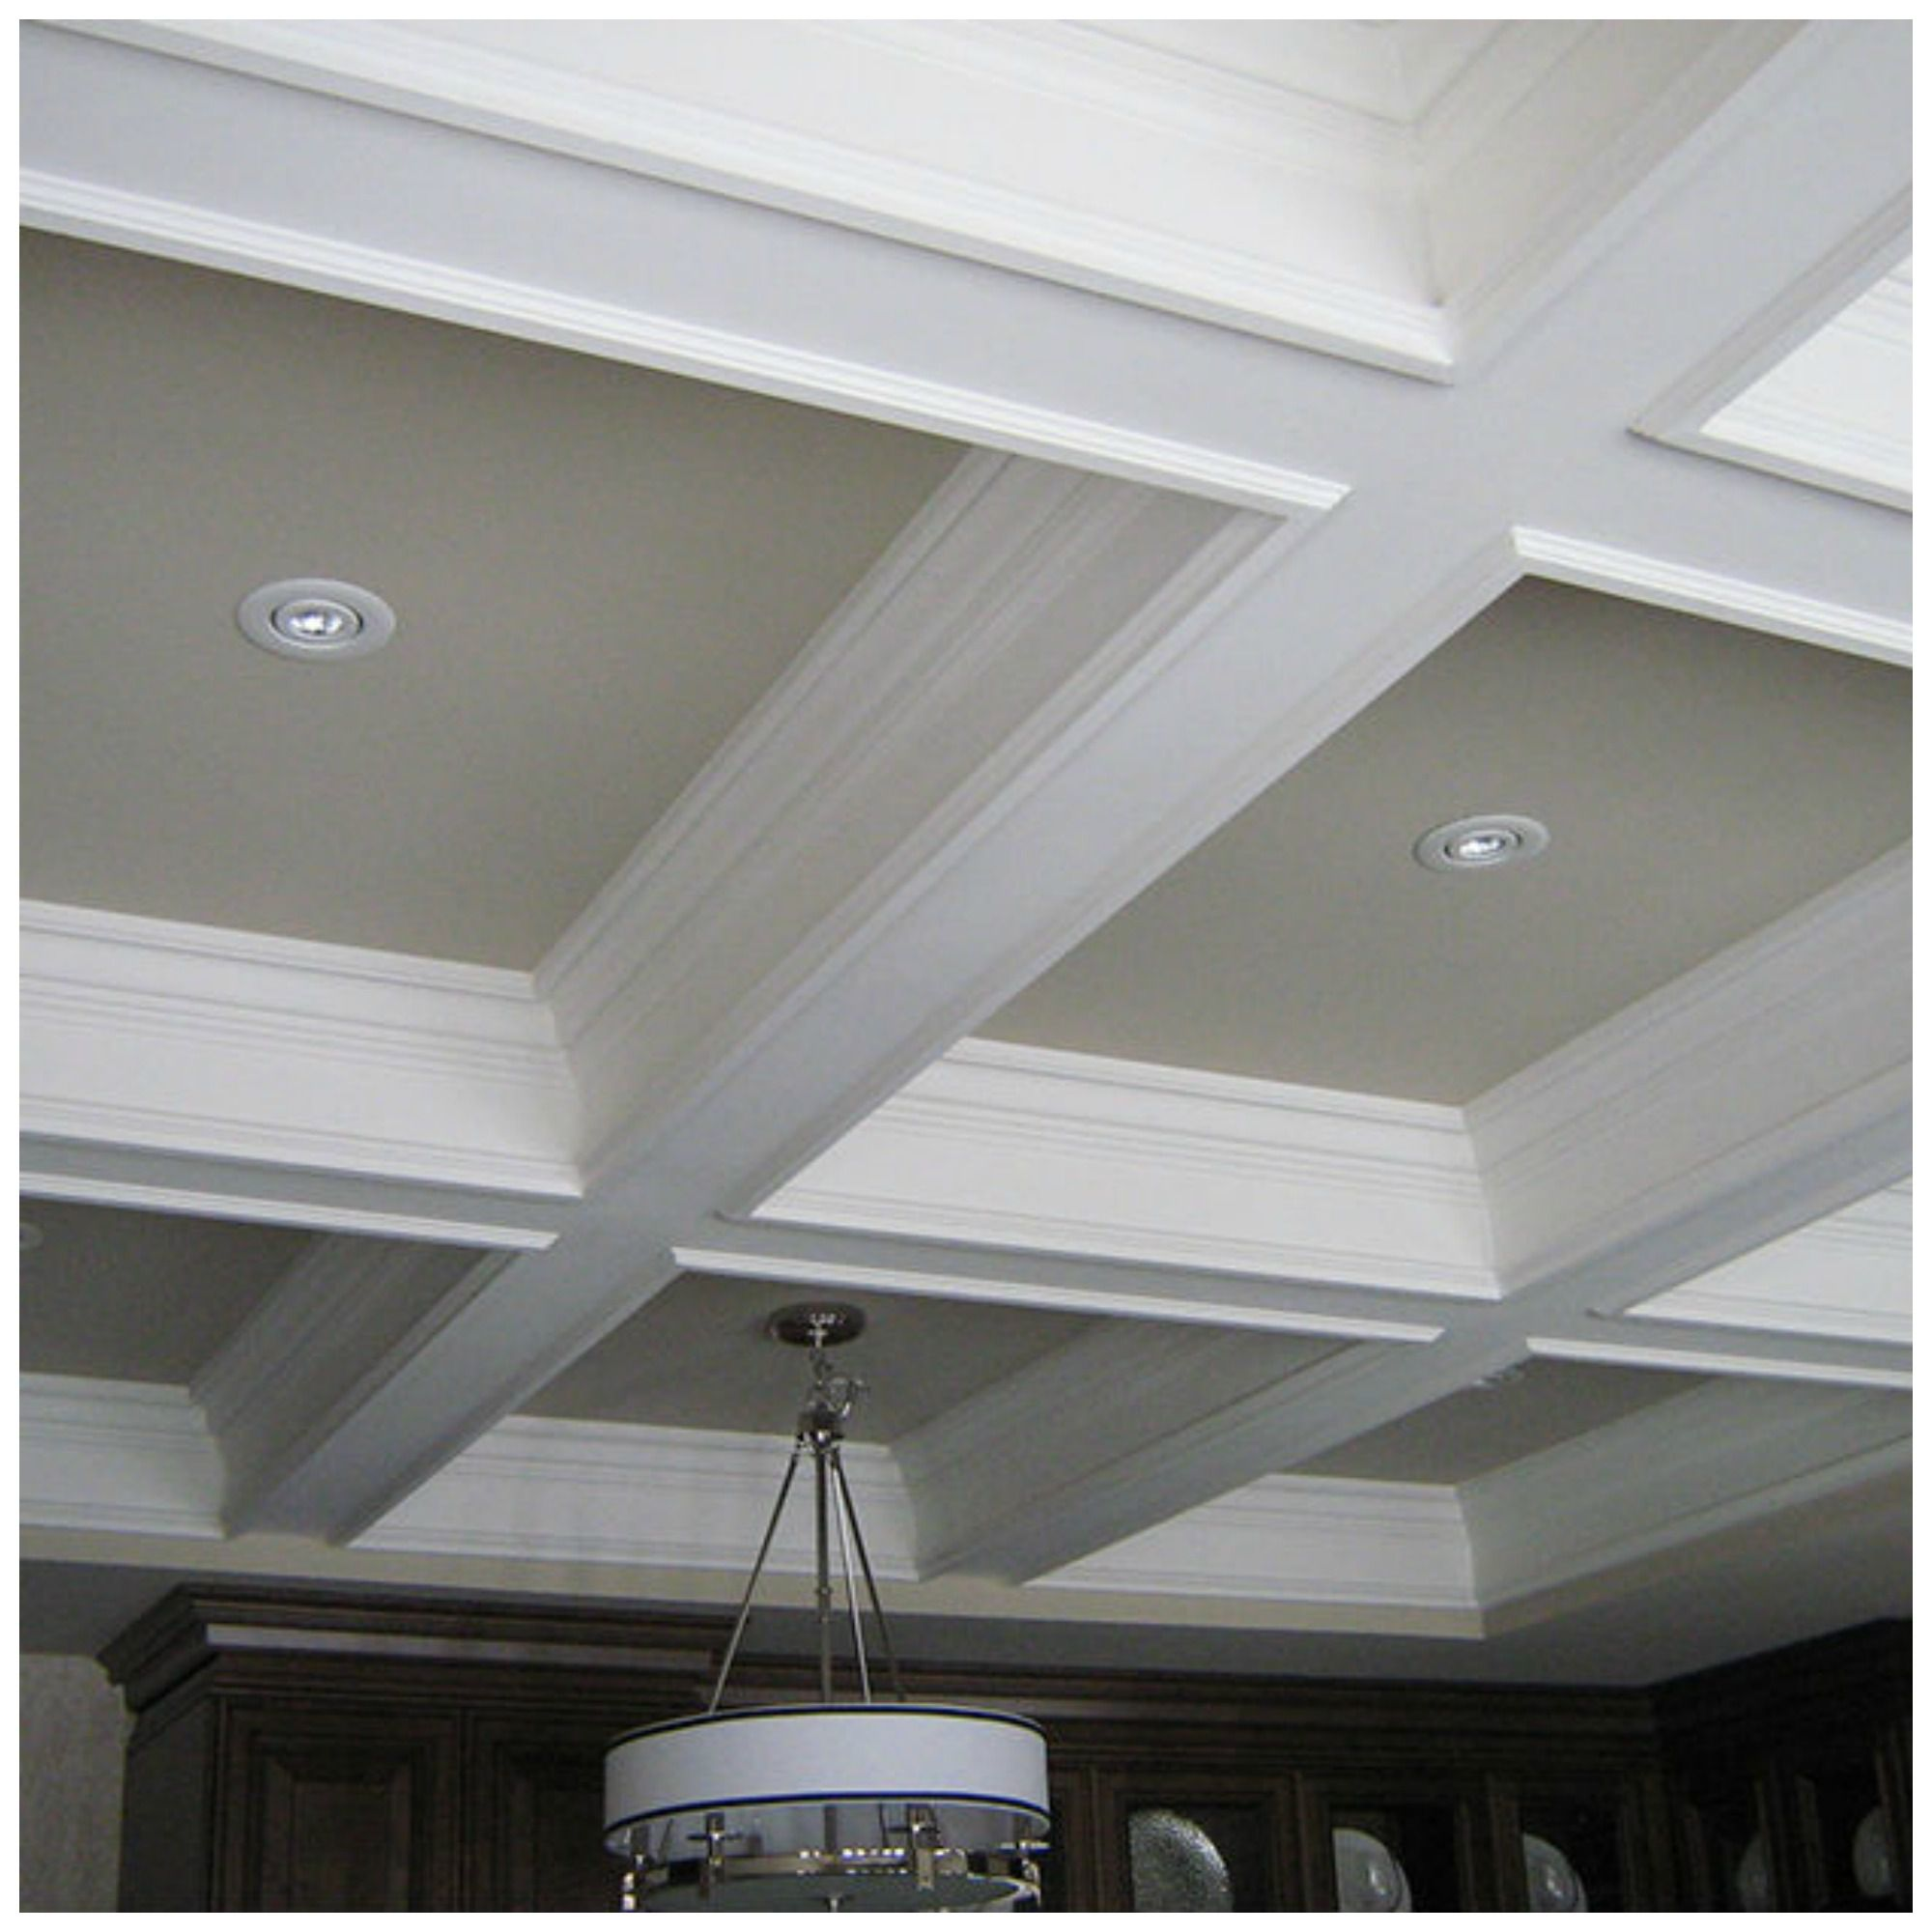 Cover popcorn ceiling and make it smooth ceiling ideas dont neglect the fifth wall dailygadgetfo Choice Image